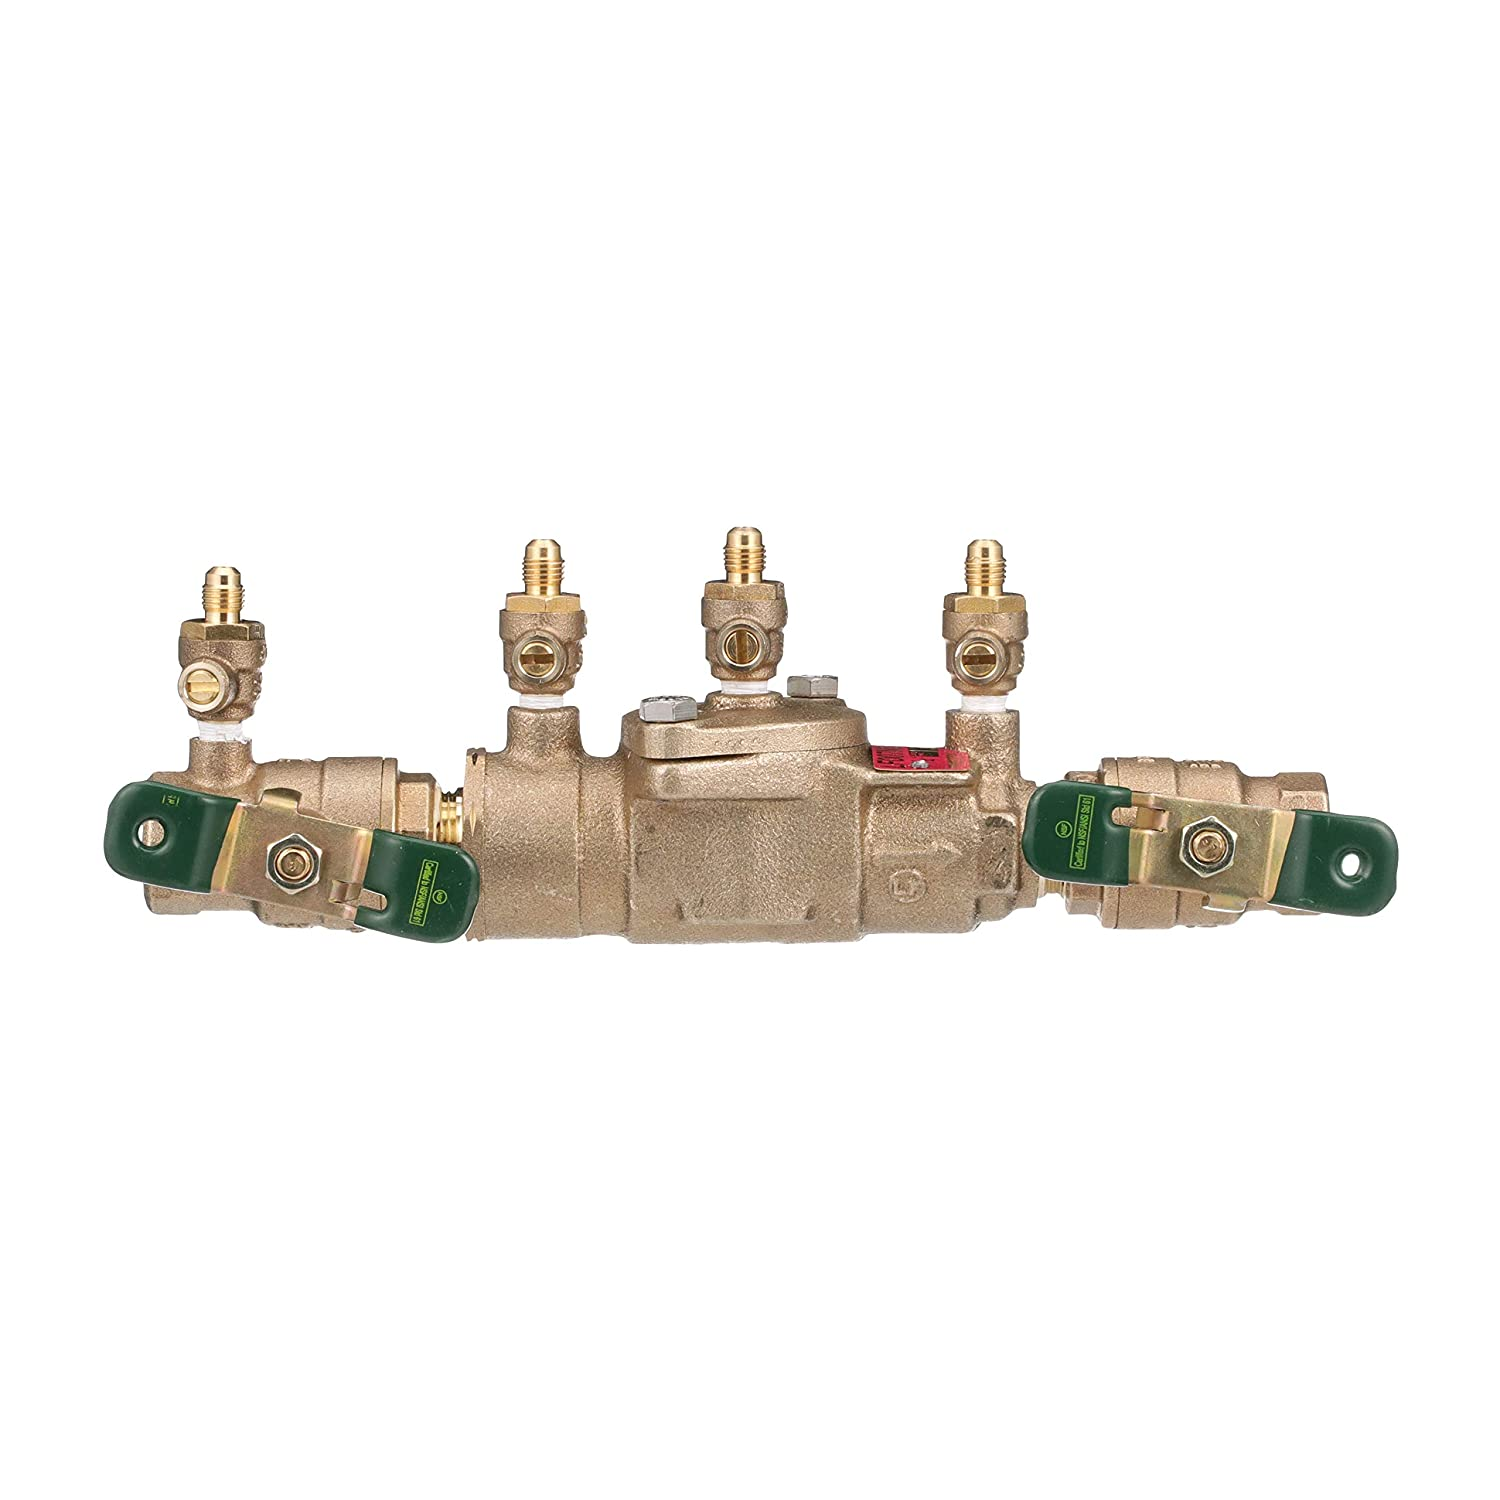 3 4 in Lead Free Seattle Mall Double Assembly Valve Check Shuto Turn Quarter Sale SALE% OFF